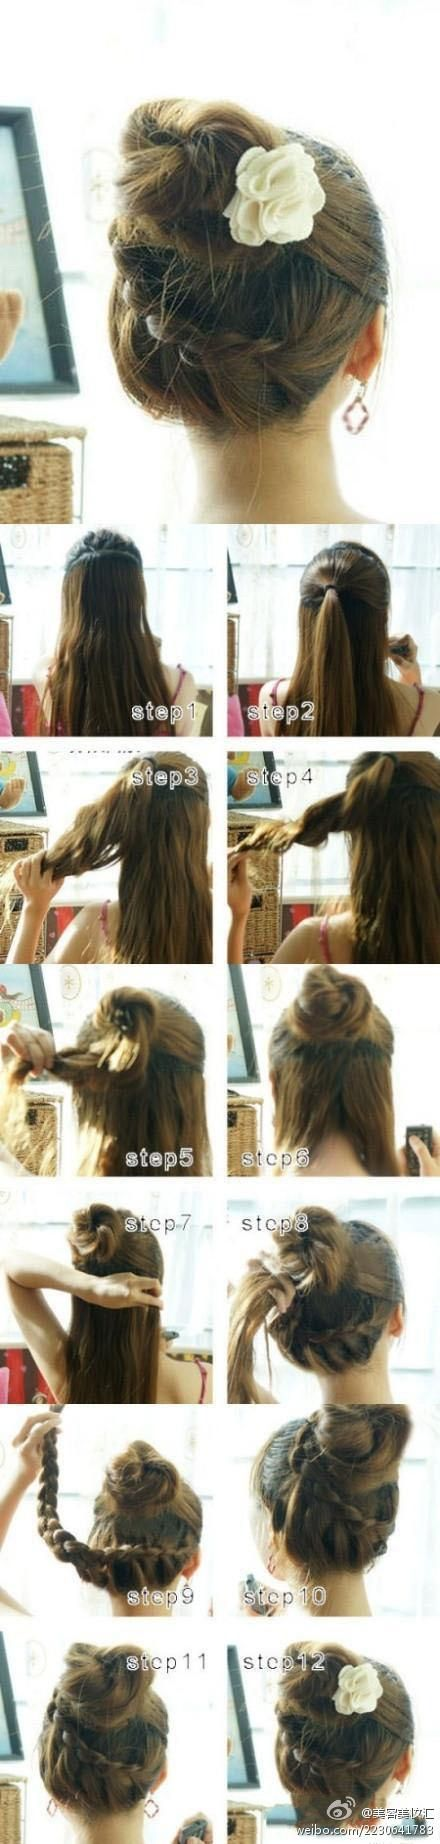 long hair: Idea, Hairstyles, Braid Buns, Hair Styles, Makeup, Braids, Updo, Braided Bun